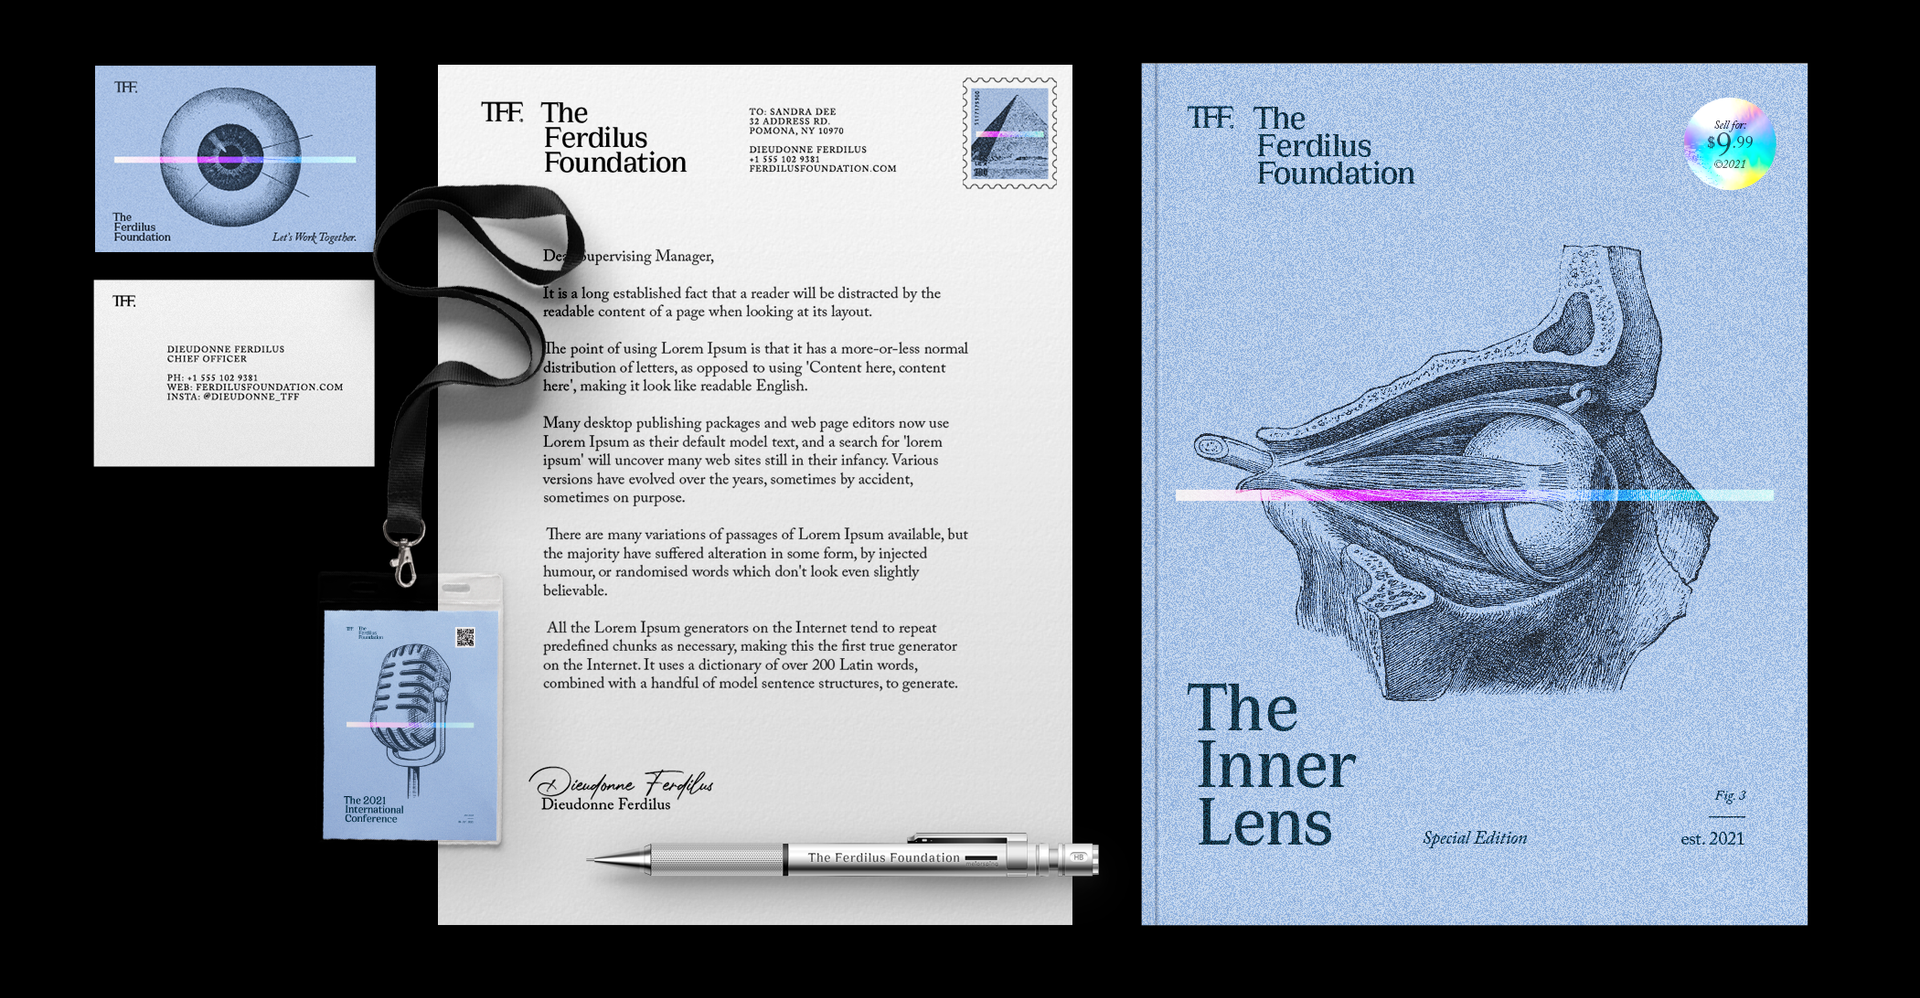 The Ferdilus Foundation Branding1 copy.p